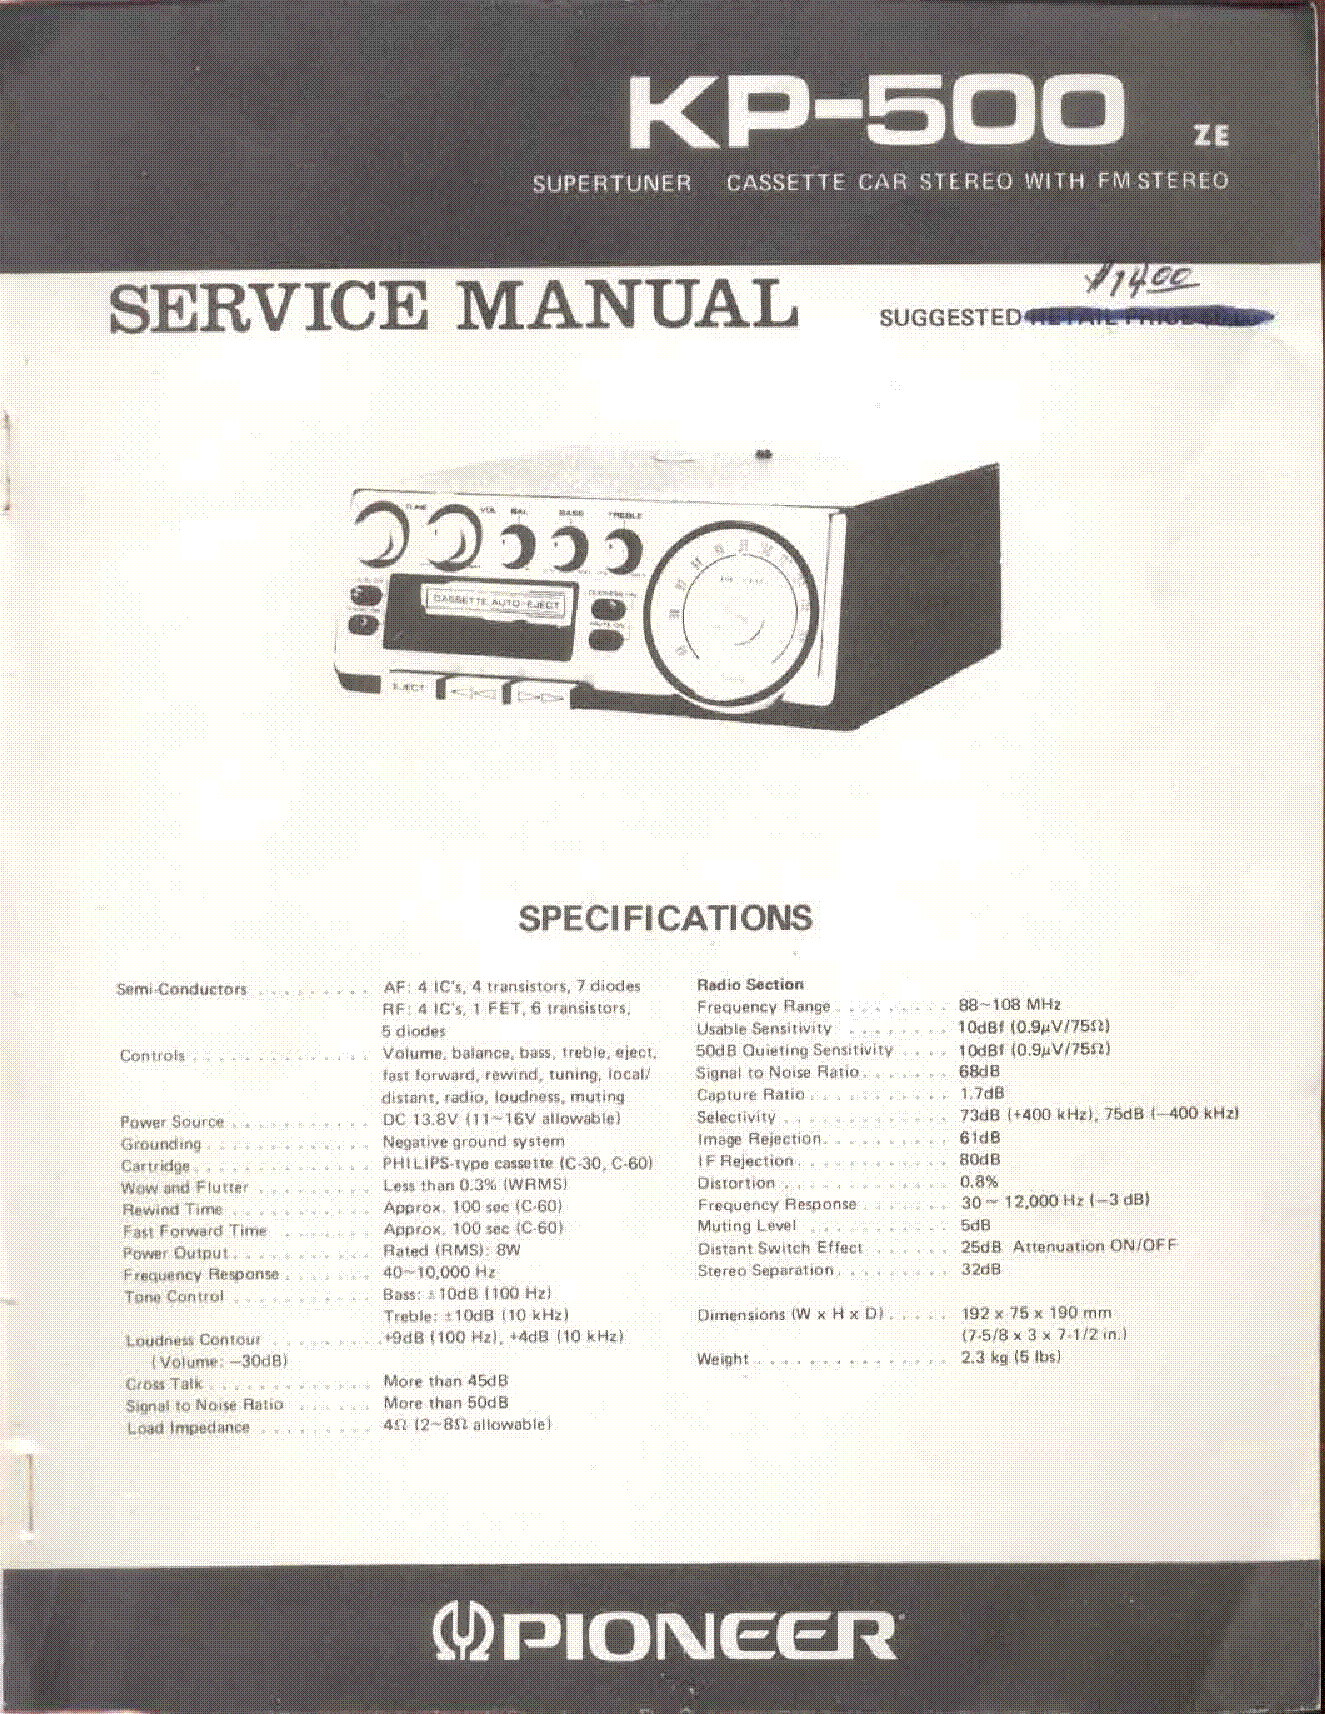 91700 Warn Wiring Diagram Pi Atilde Uml Ces De Carburateur 16 5ti Pioneer Kp Image 500 Service Manual Schematics Eeprom On